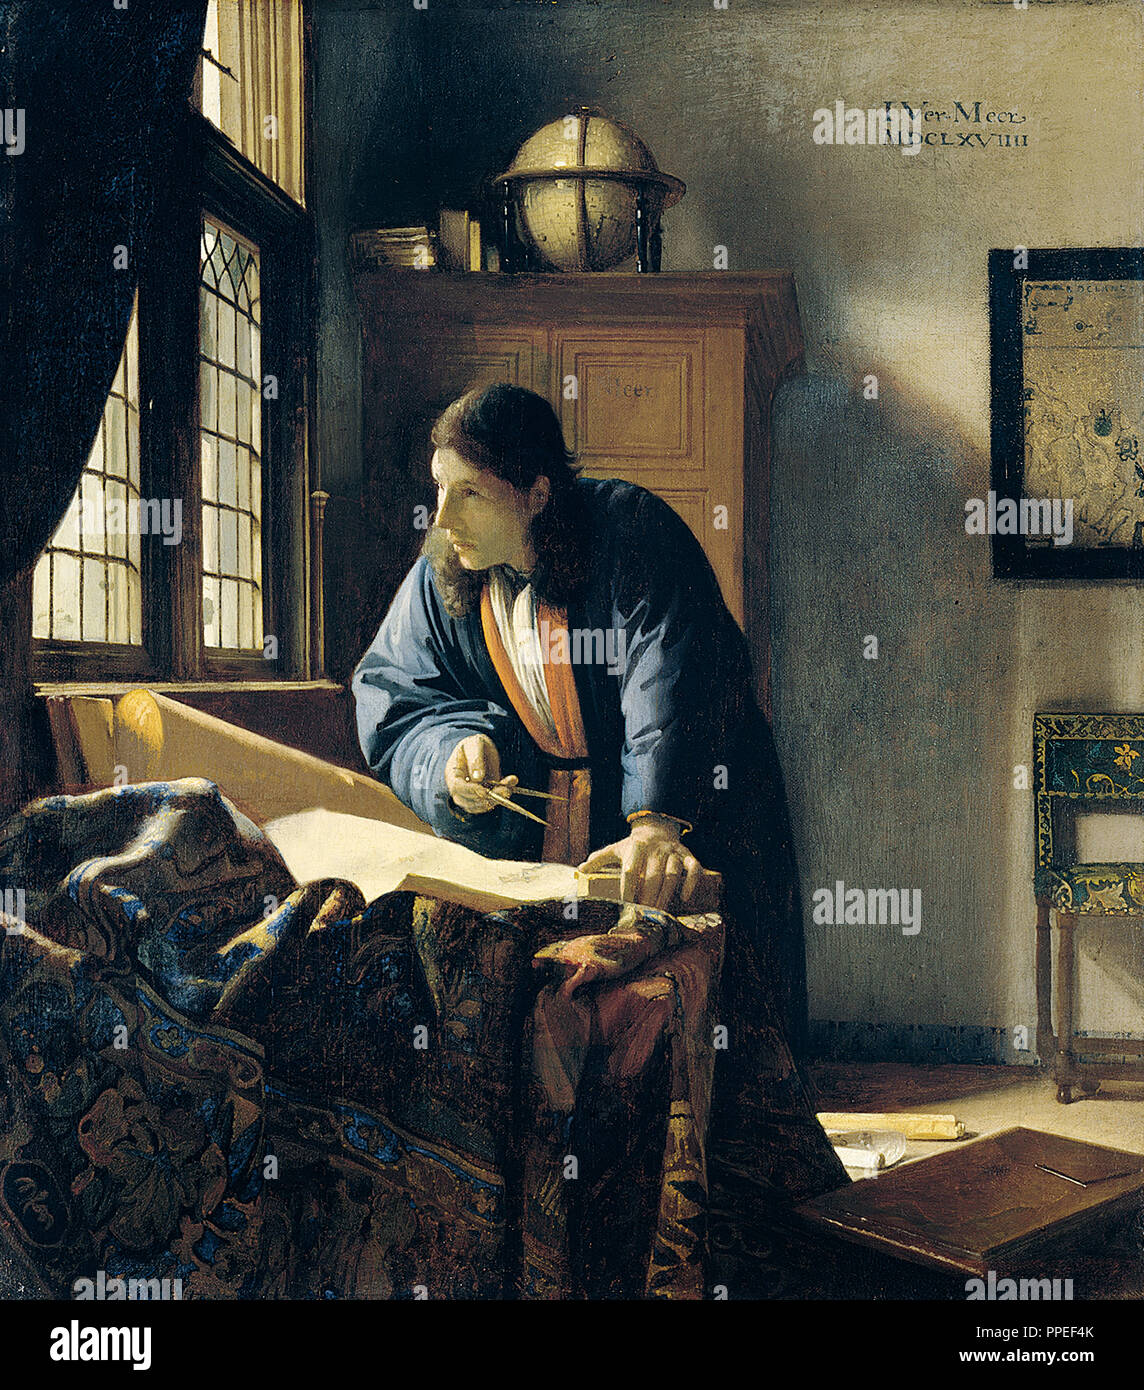 Johannes Vermeer - The Geographer. 1669 Oil on canvas. Stadel Museum, Frankfurt, Germany. - Stock Image